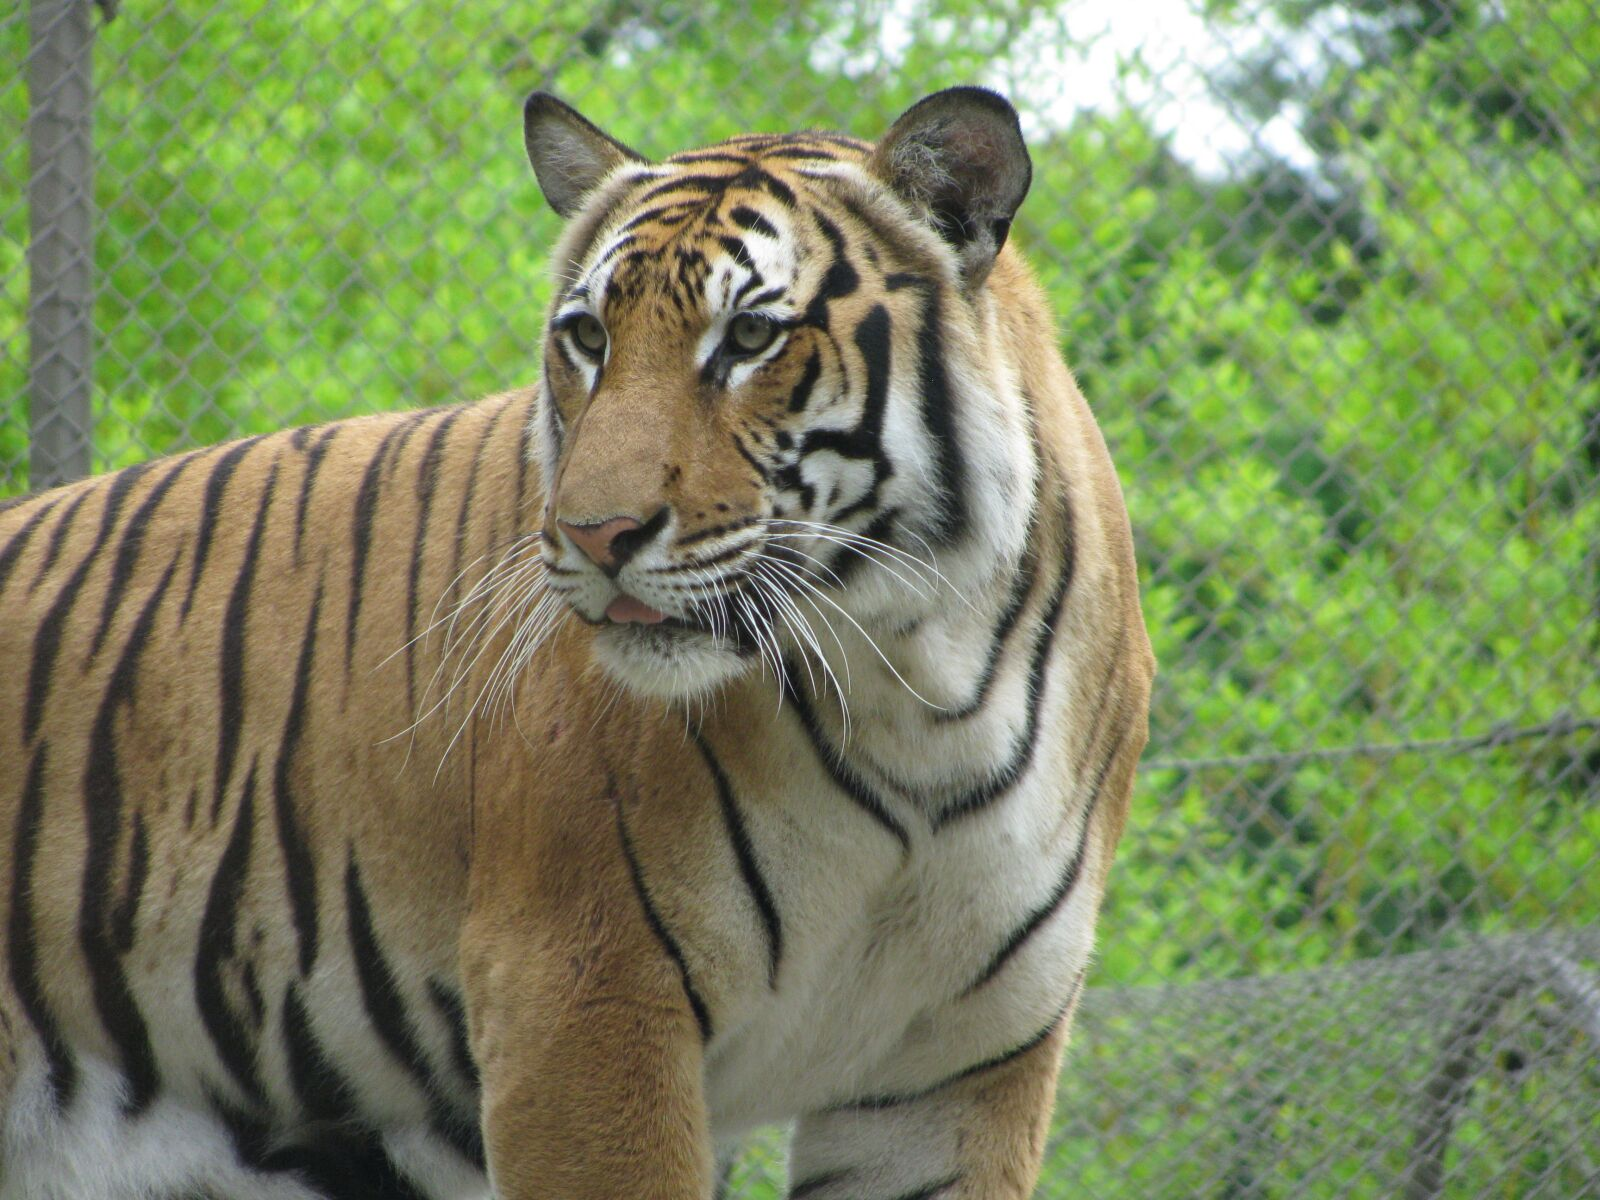 """Canon PowerShot SX110 IS sample photo. """"Tiger, stripes, cat"""" photography"""